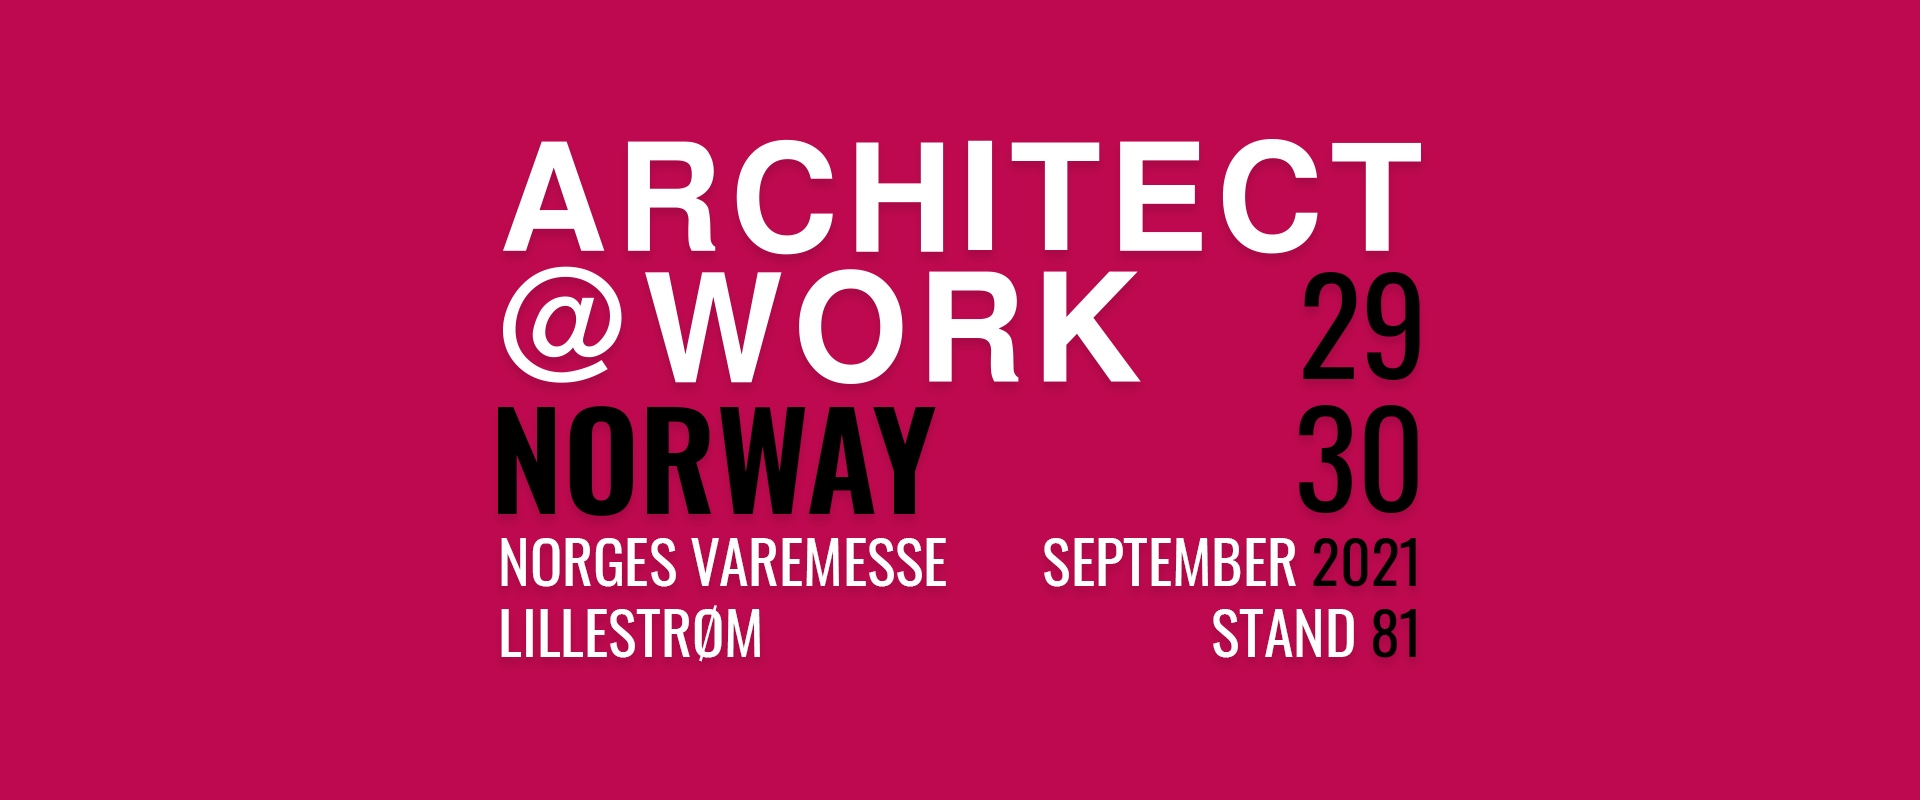 Architect@Work 2021 in Norway - 29-30 September